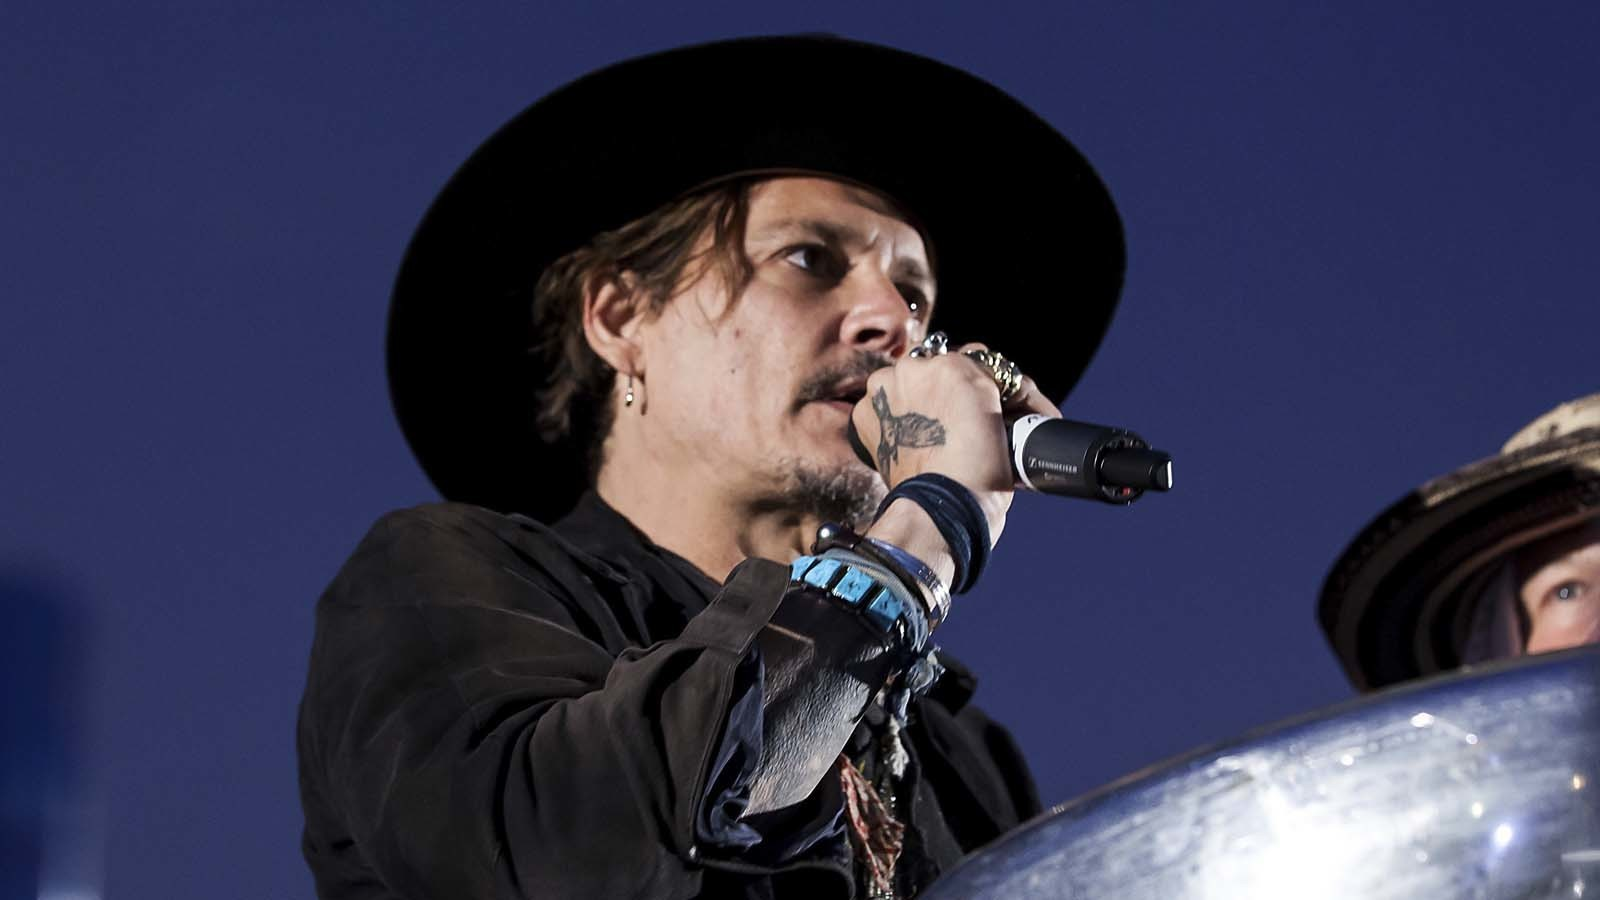 JOHNNY DEPP ARRESTED FOR ASSASSINATION PLOT